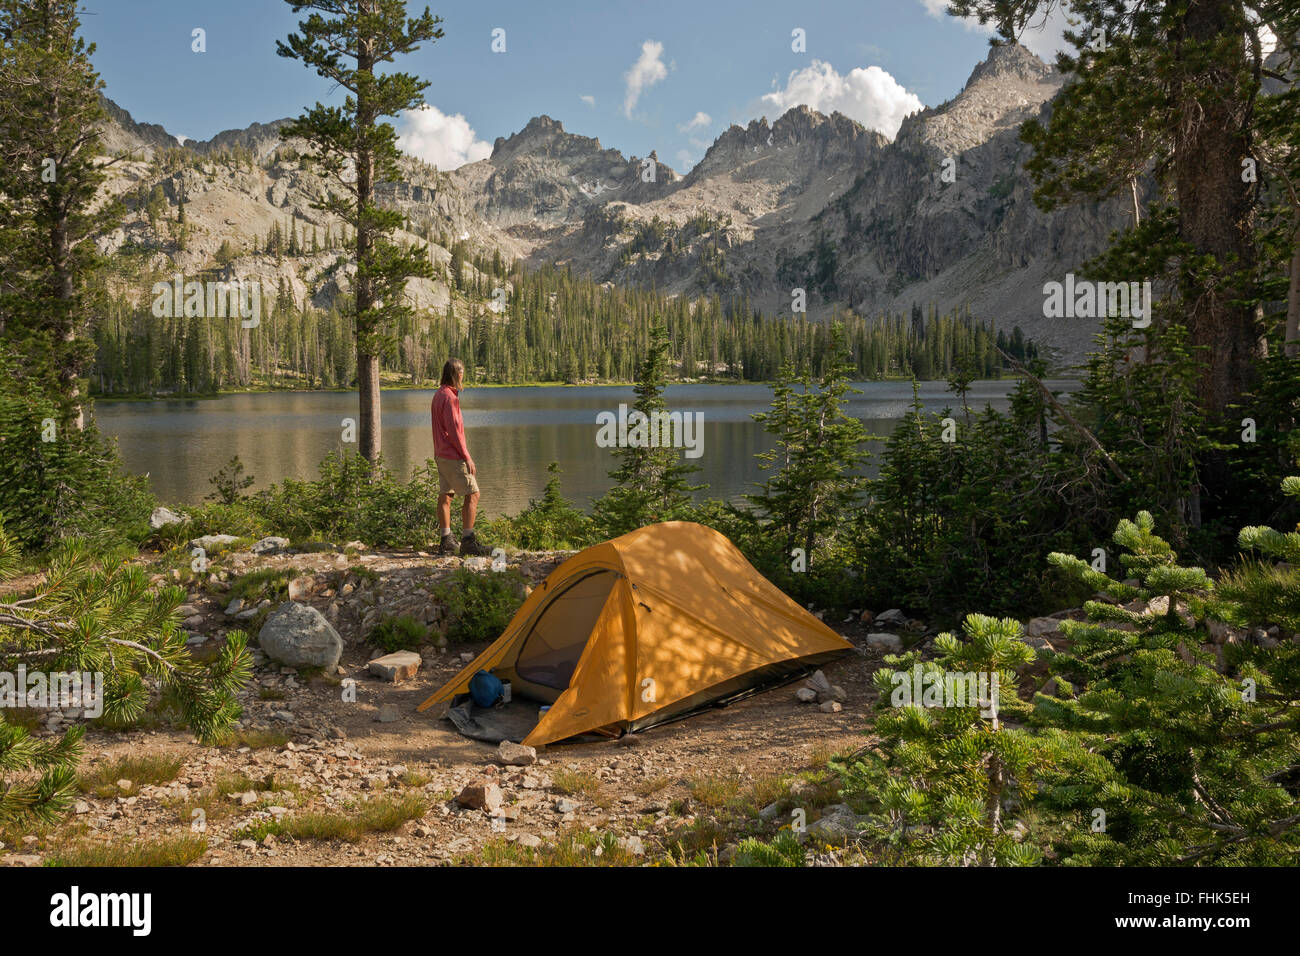 ID00431-00...IDAHO - Hiker at campsite at Alice Lake in the Sawtooth Wilderness Area. - Stock Image